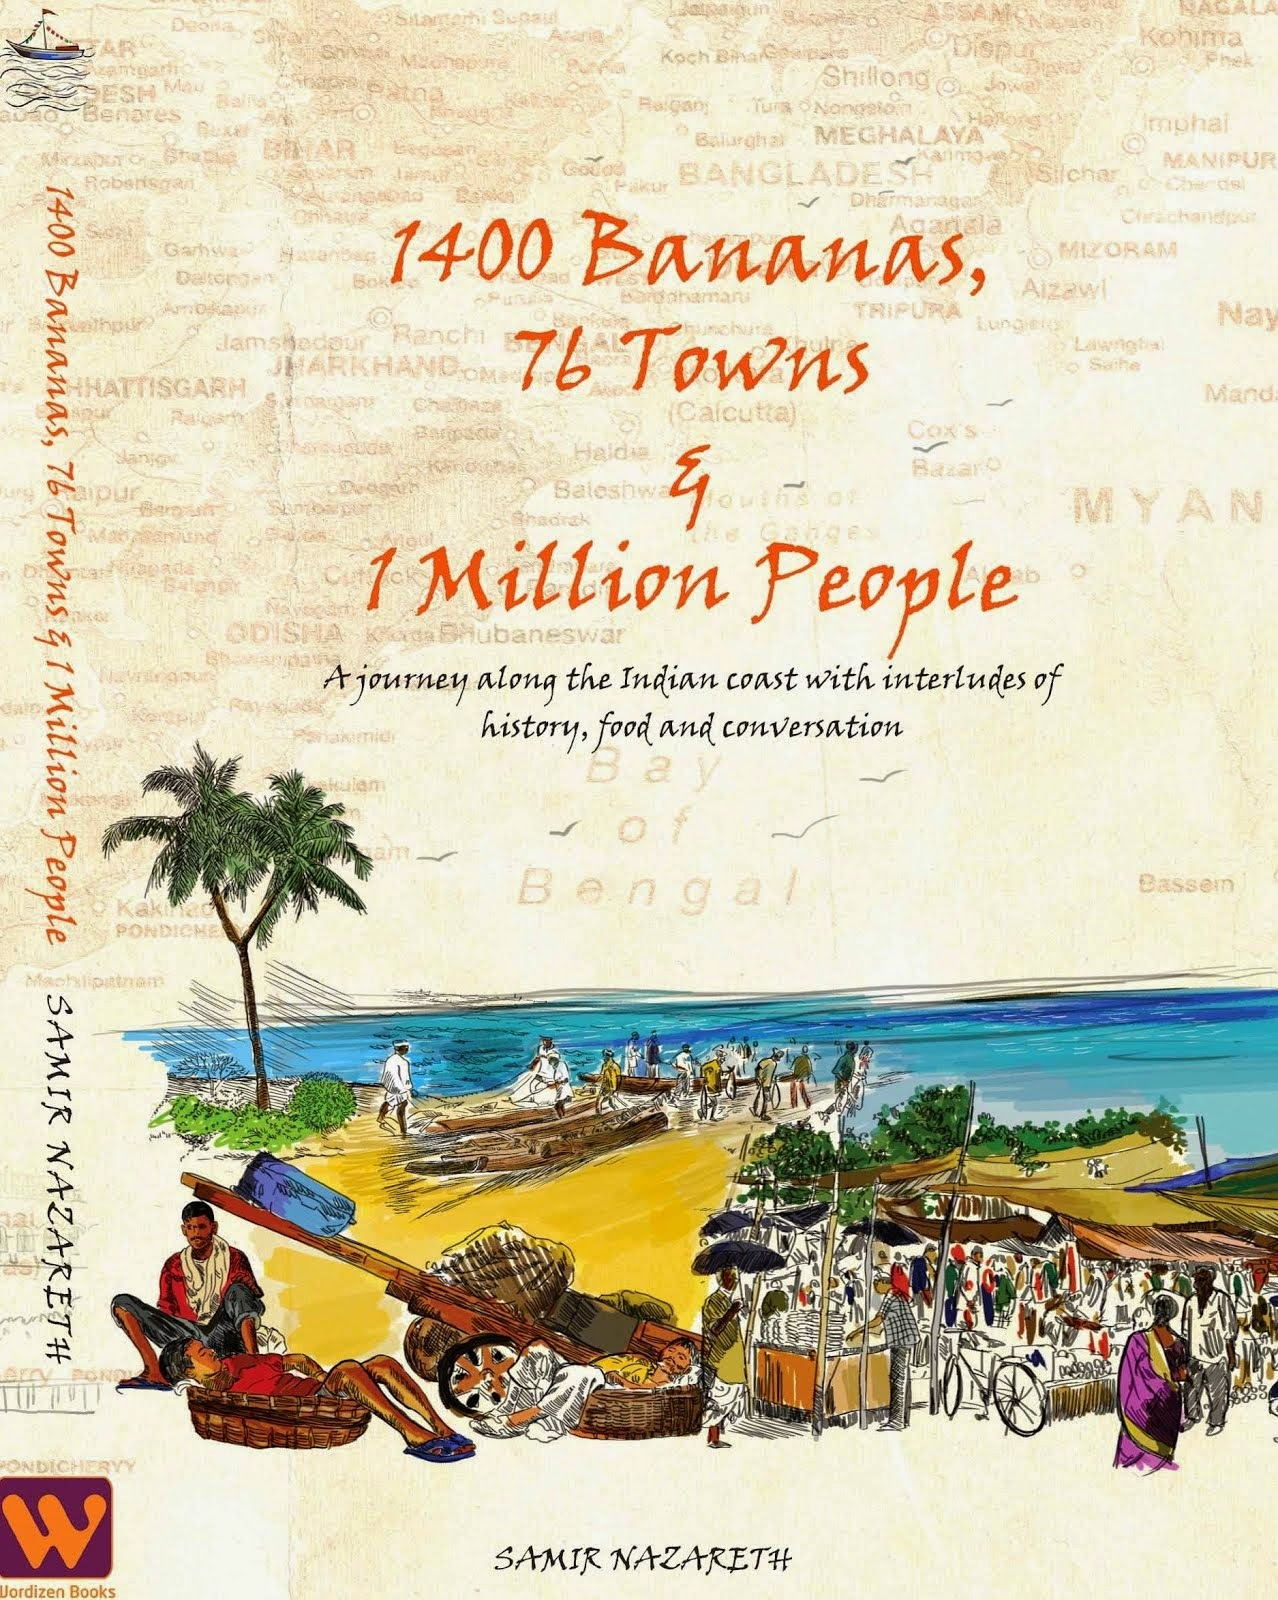 New book you cannot miss: 1400 Bananas, 76 Towns & 1 Million People by Samir Nazareth